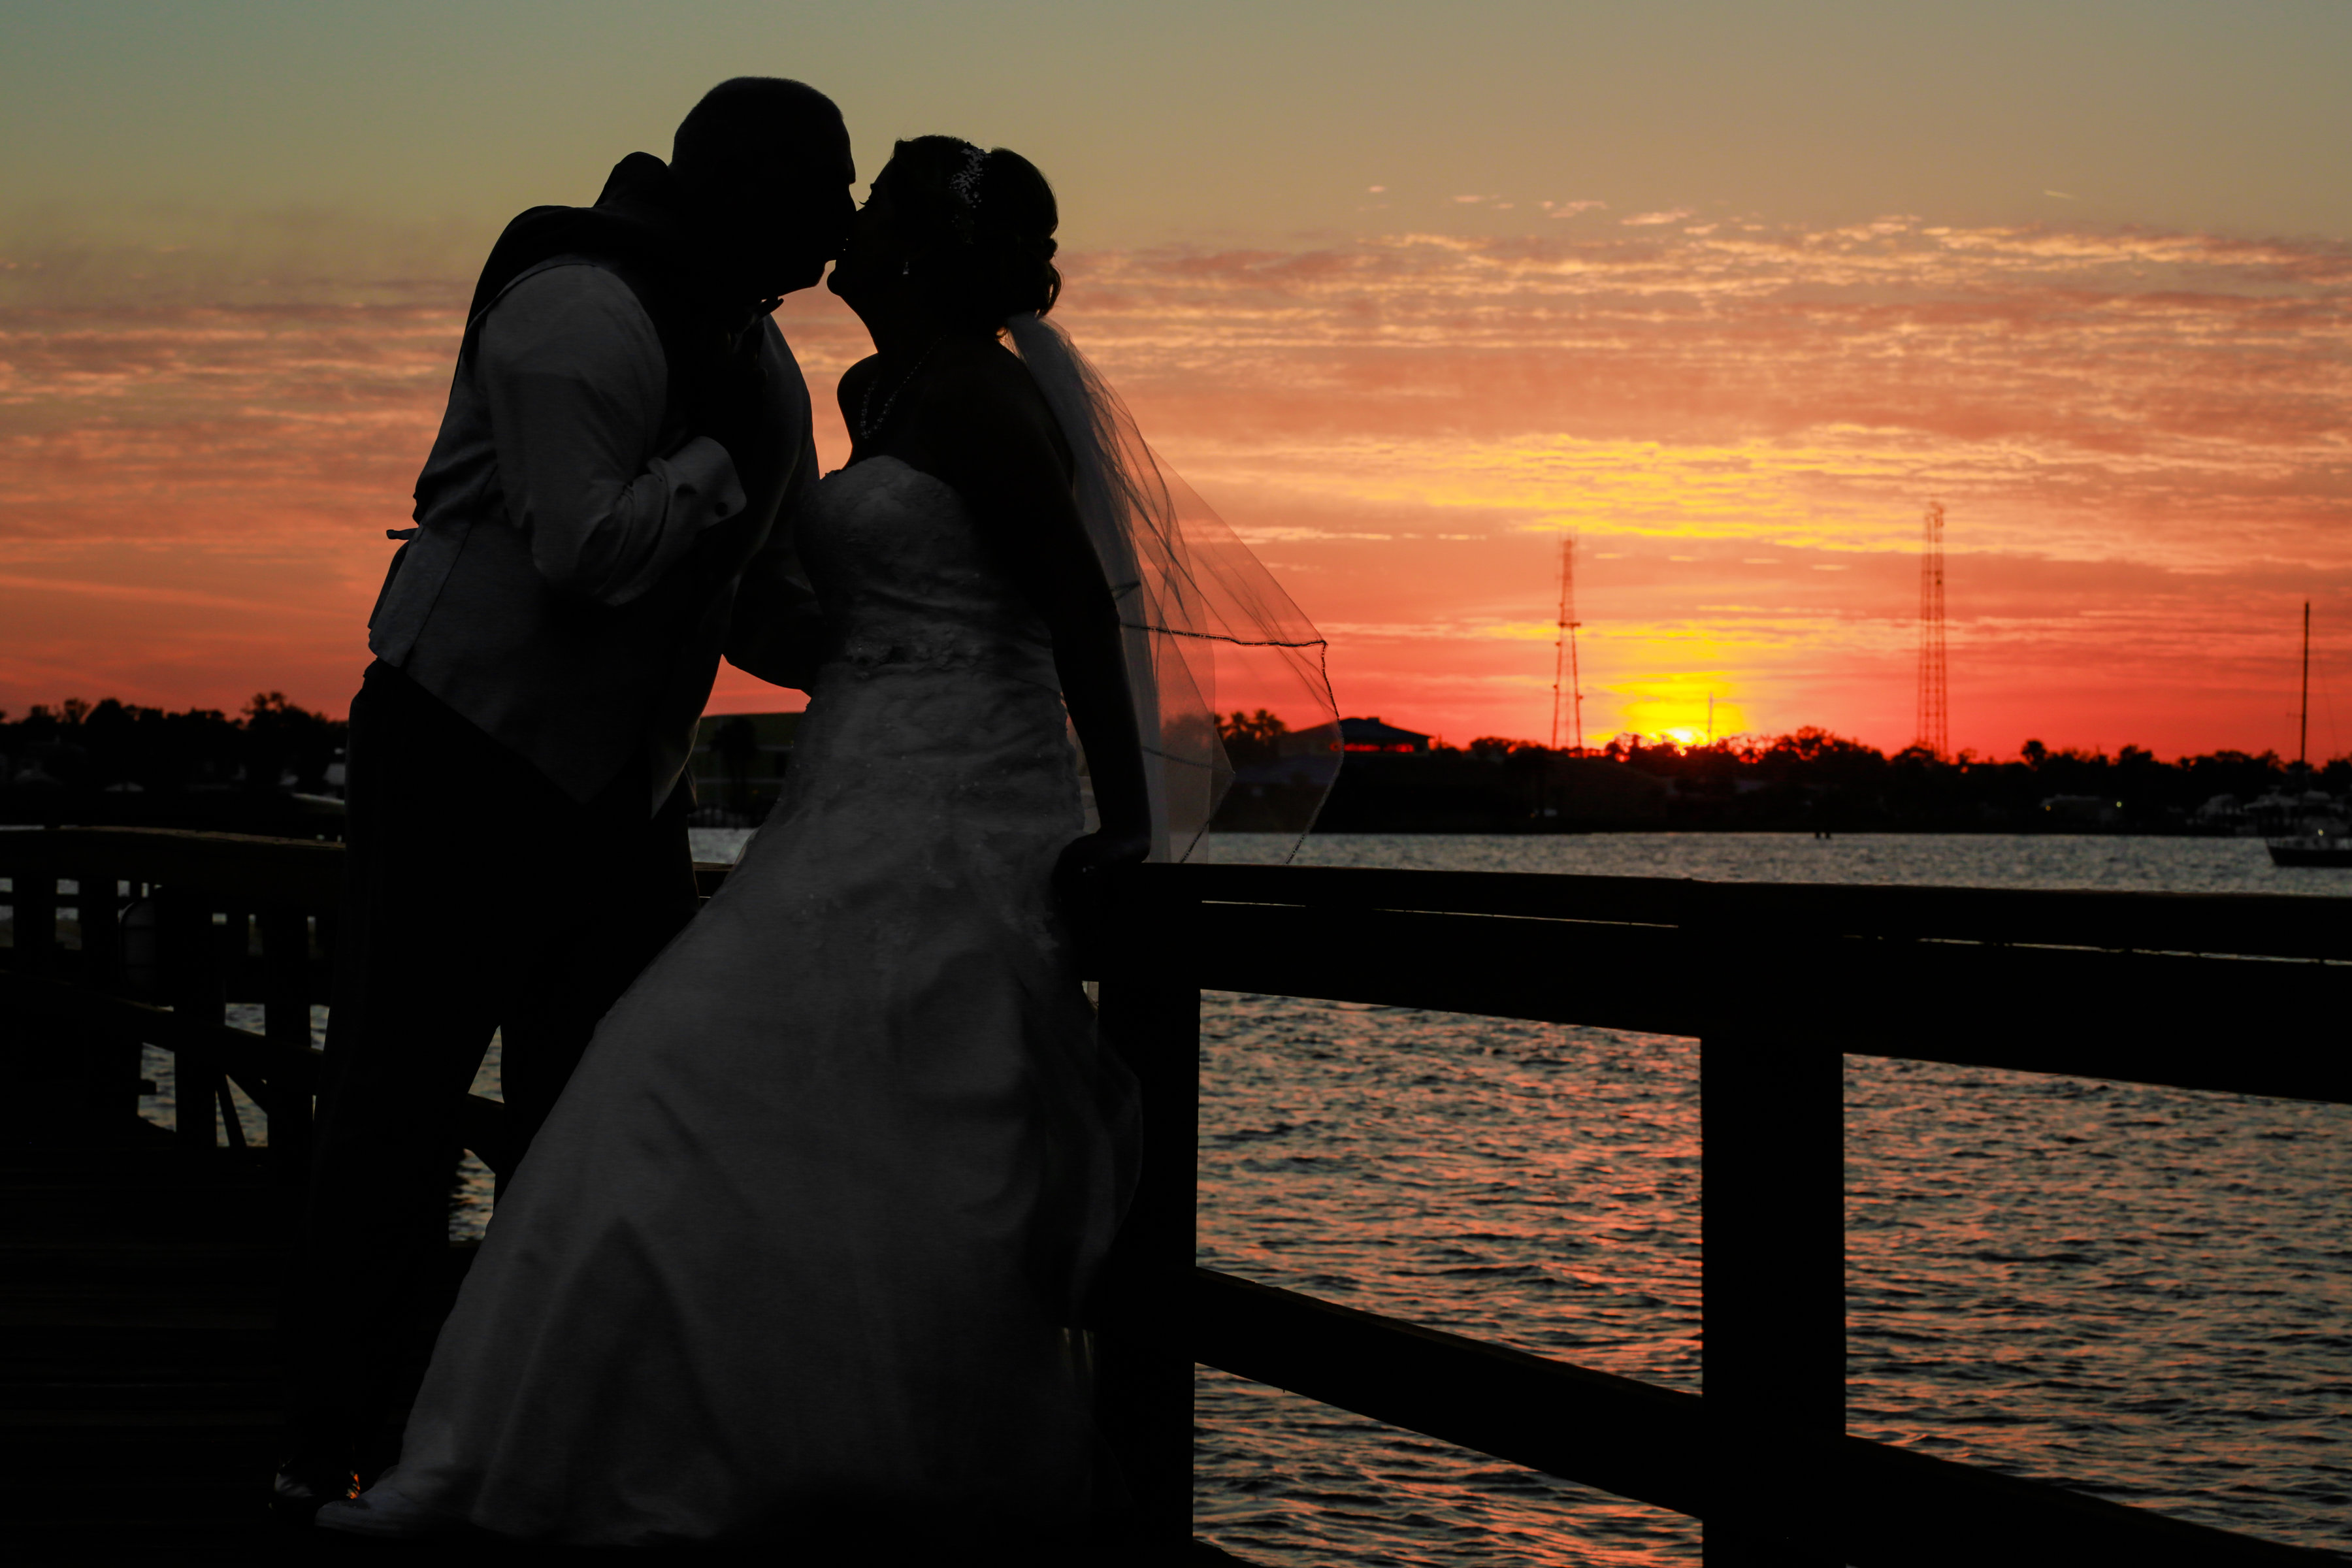 wedding-sunset-riverfront-event-center-06.17